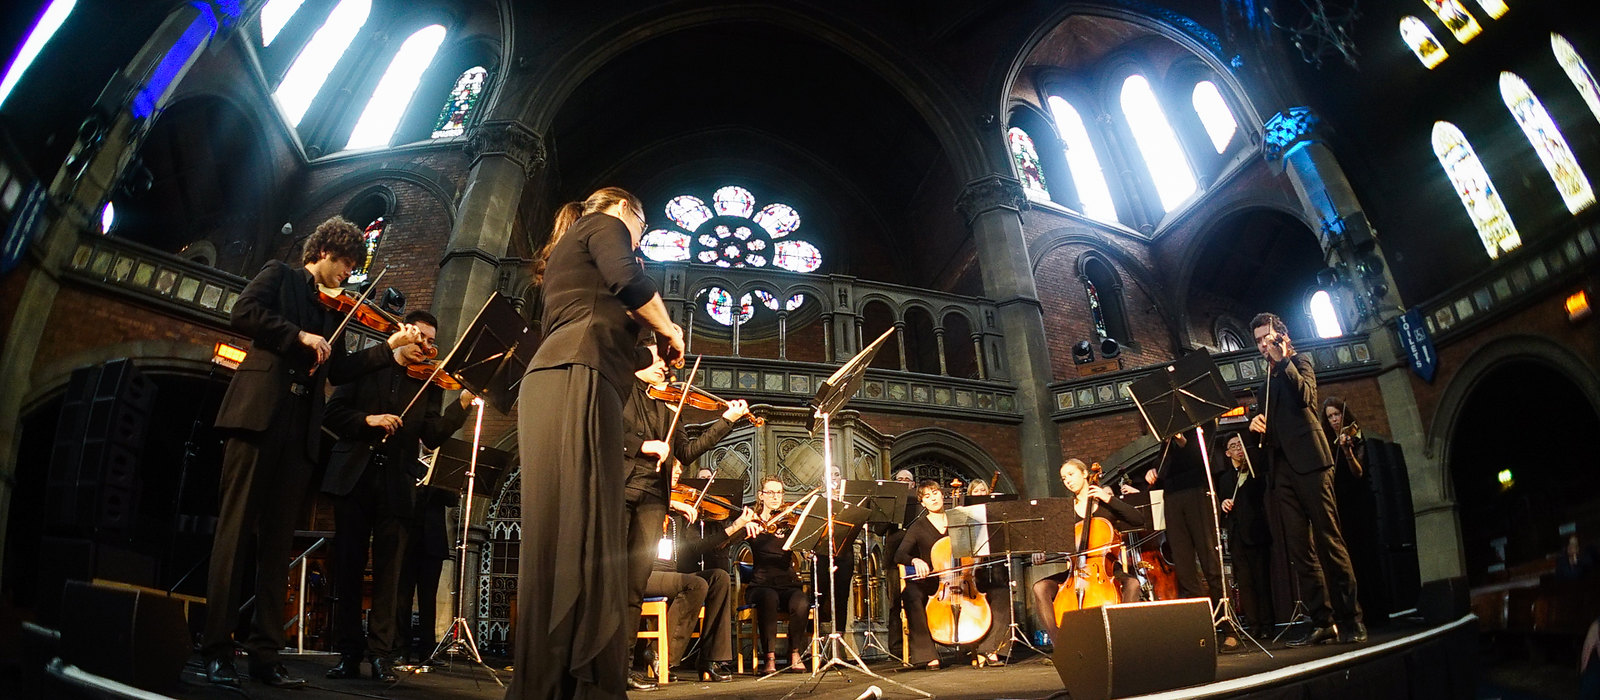 Daylight Music 212 - Orchestra of the Age of Enlightenment Experience Ensemble